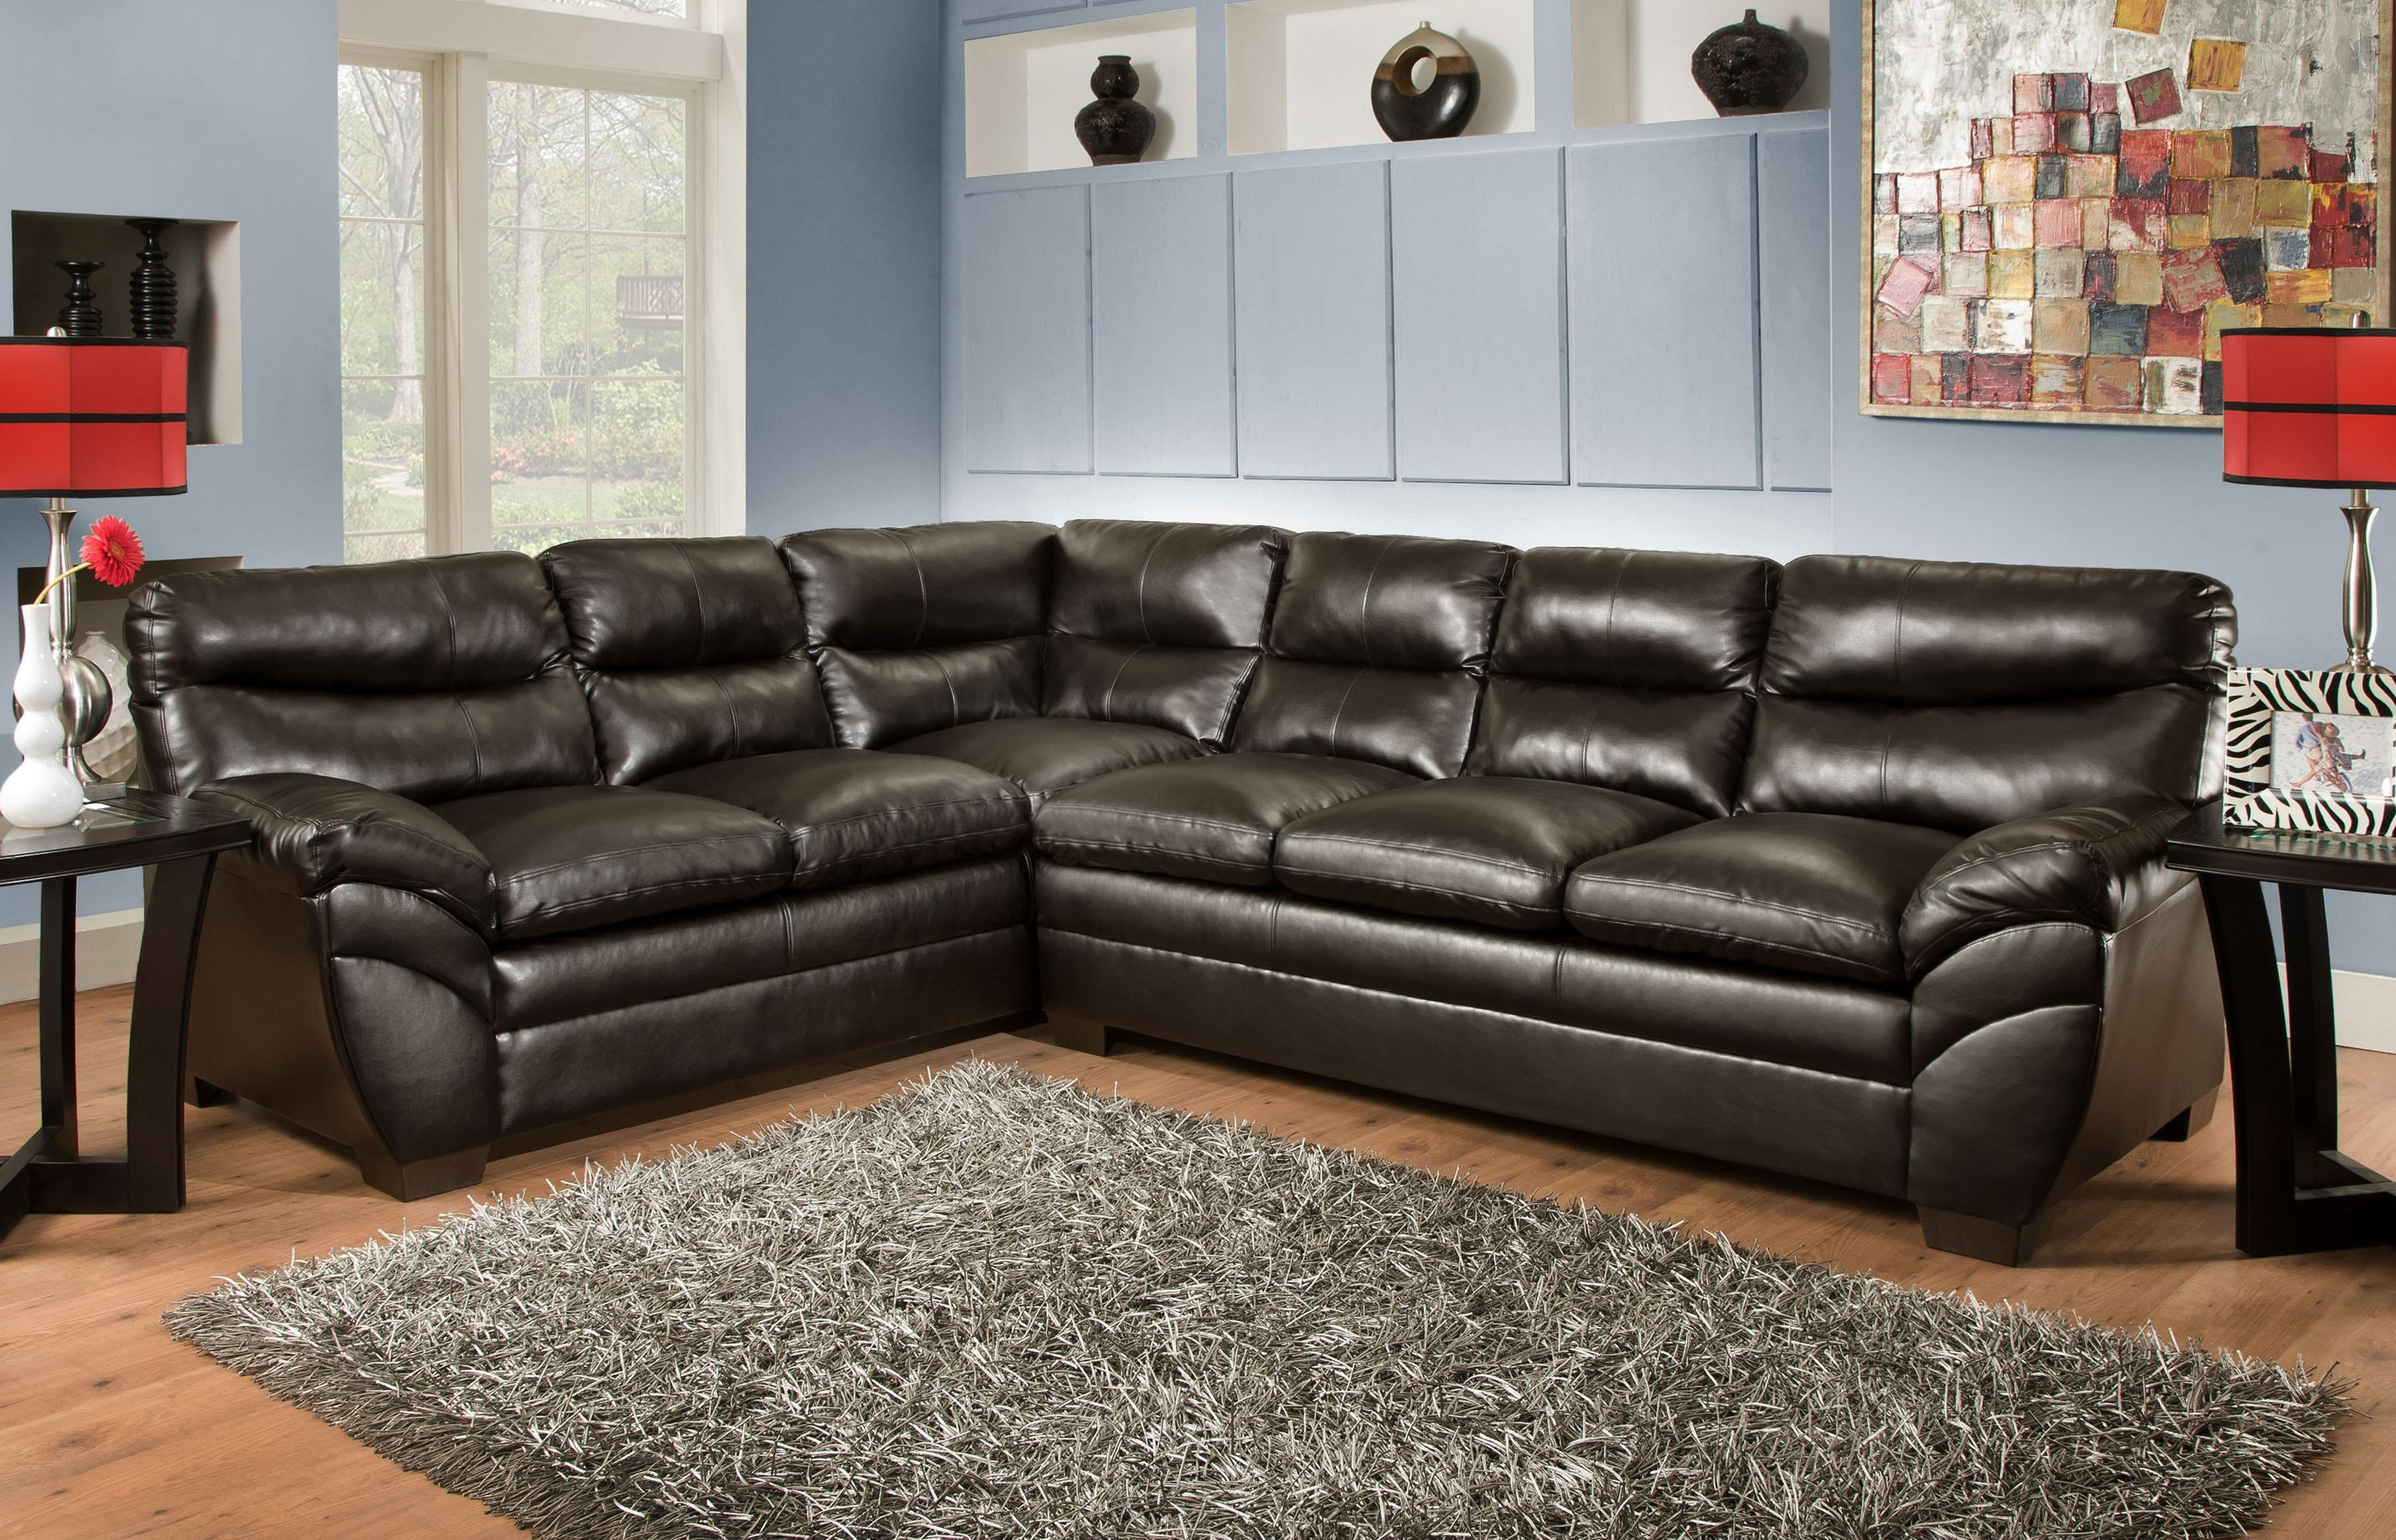 Epic Sectional Sofa Charleston Sc 27 About Remodel Comfy Sectional Inside Comfy Sectional Sofa (Image 7 of 15)